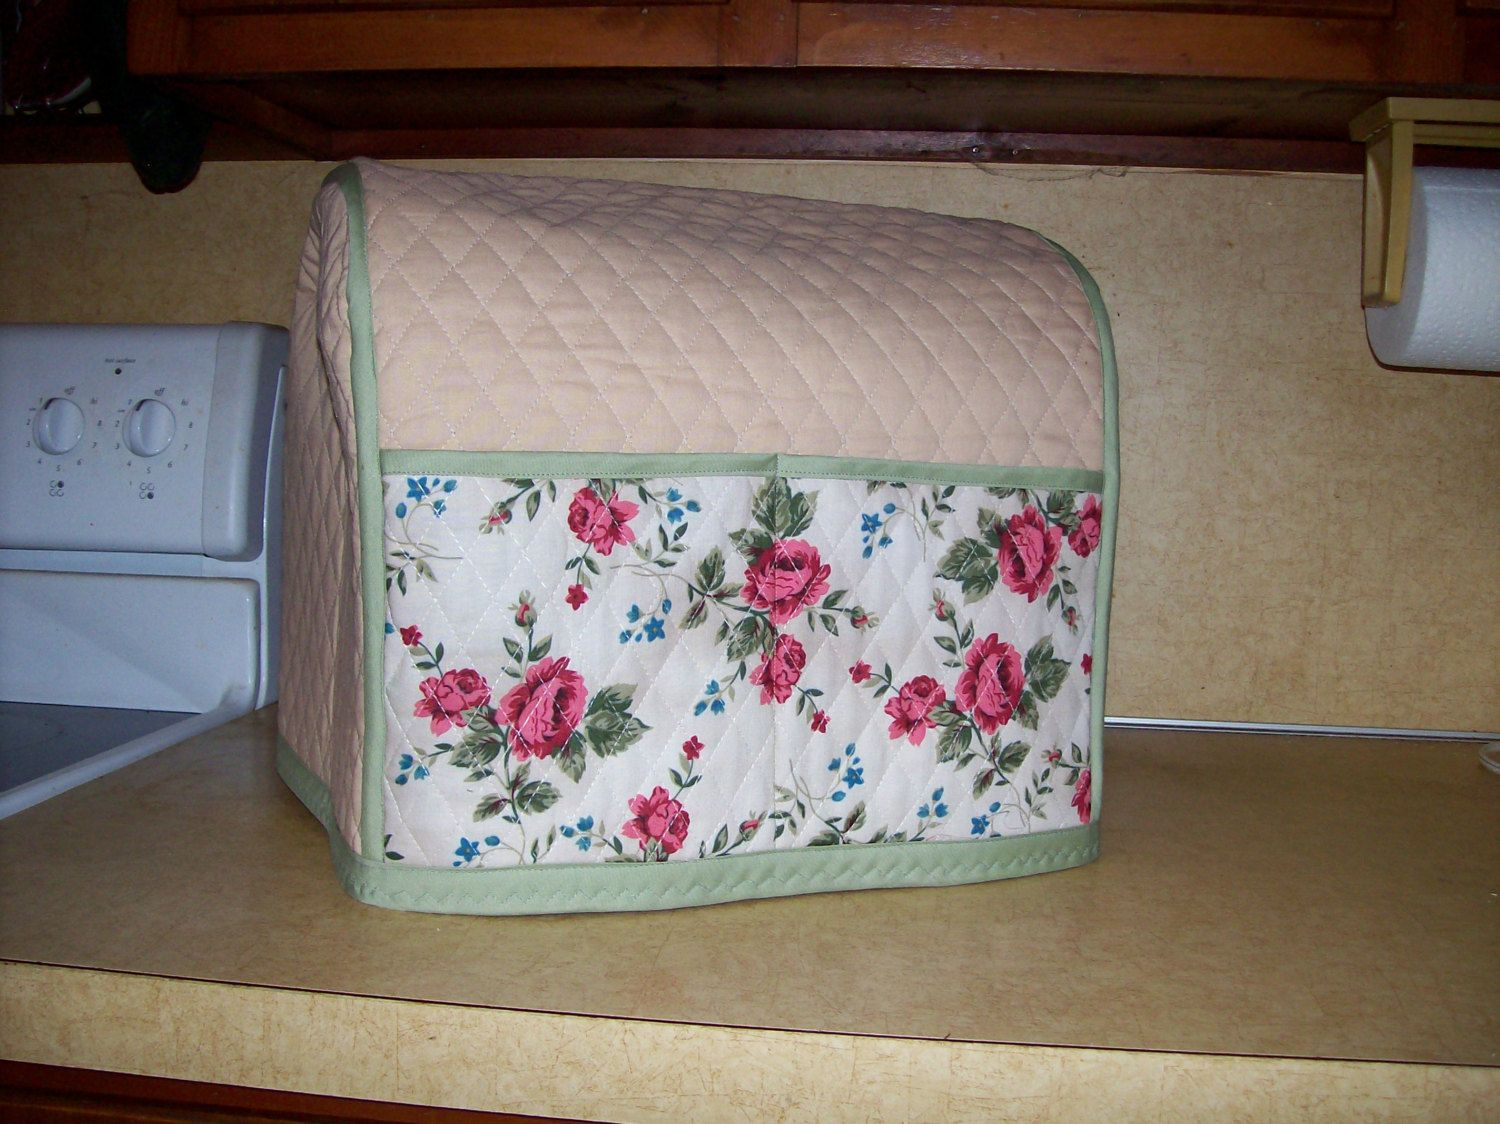 Kitchenaid mixer cover etsy mixer cover pre quilted